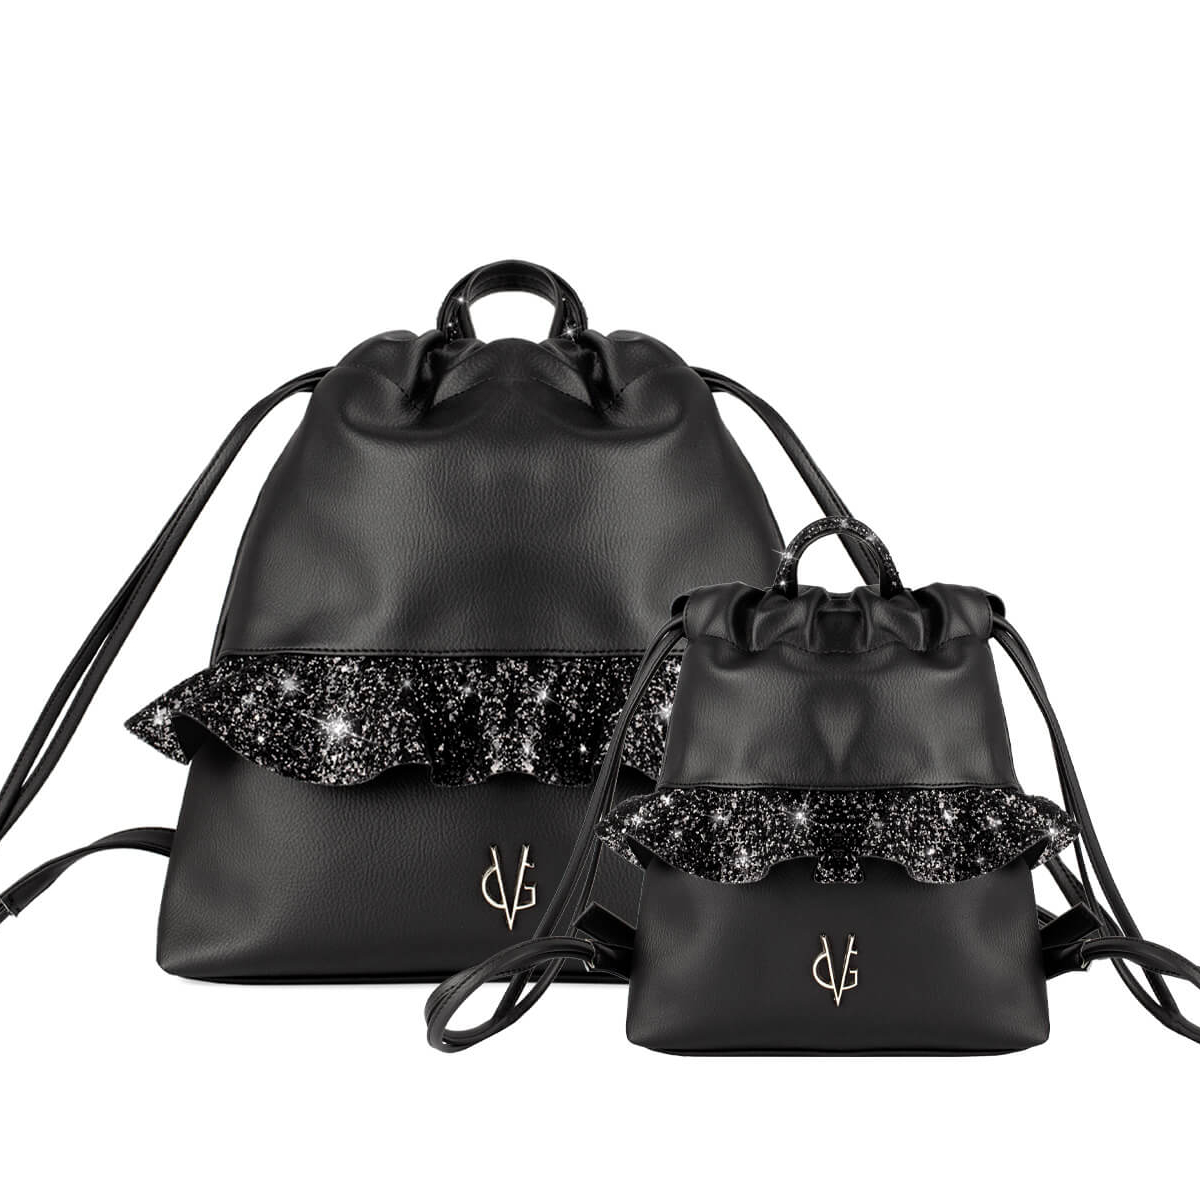 VG black glitter rouches backpack set Mamy & Baby